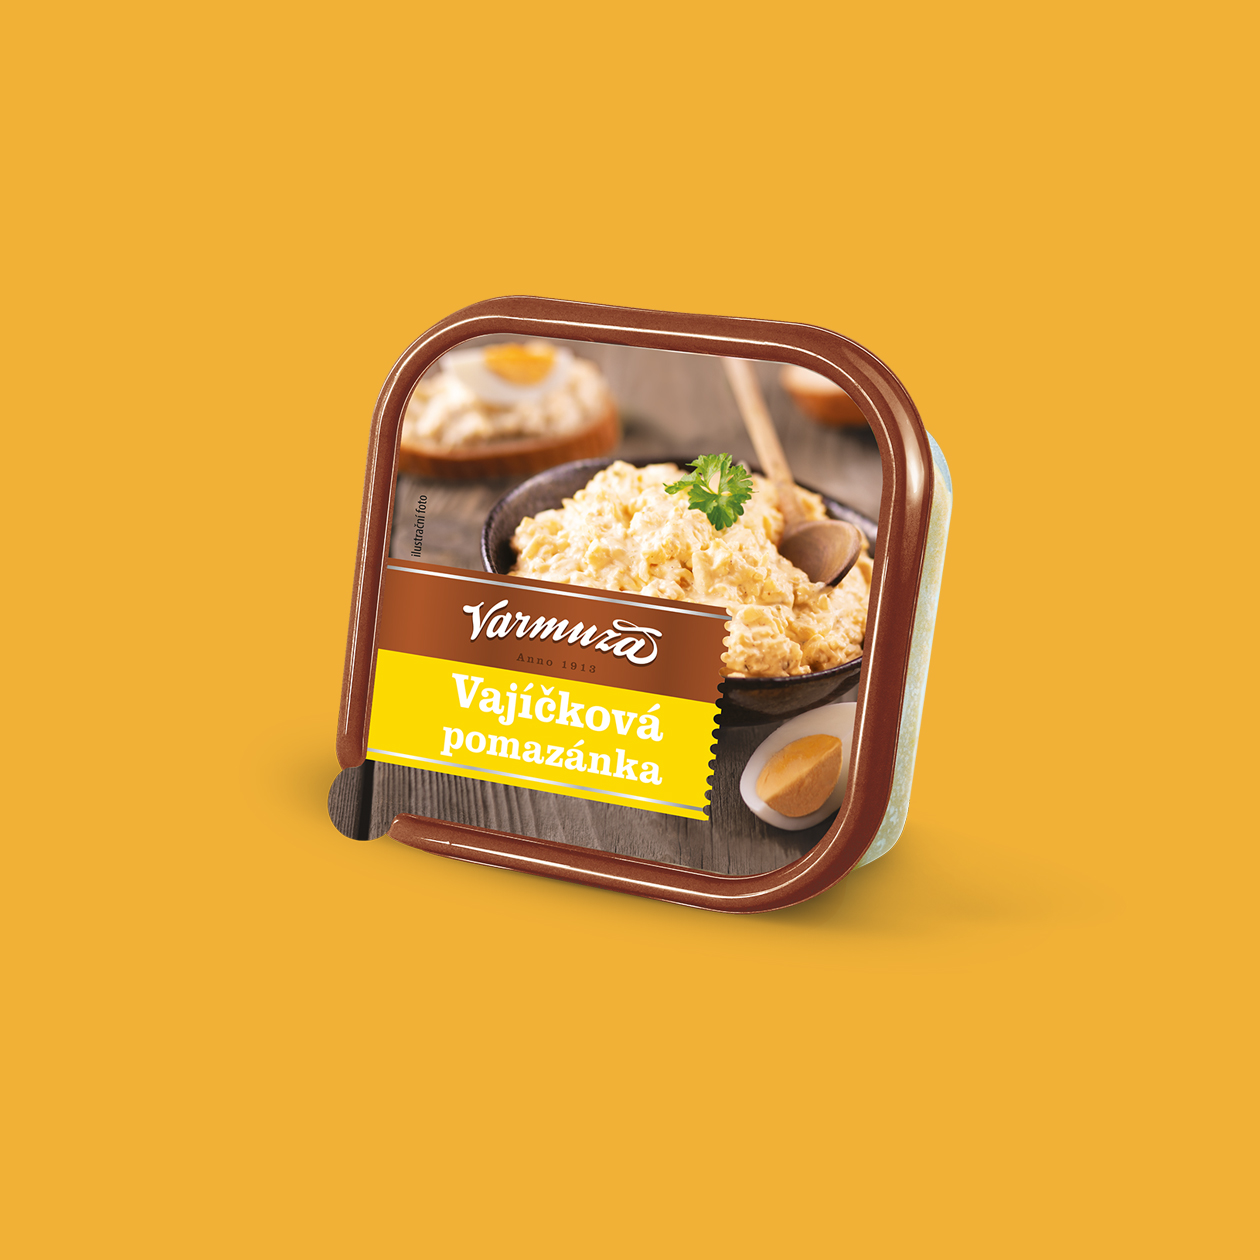 varmuza packaging